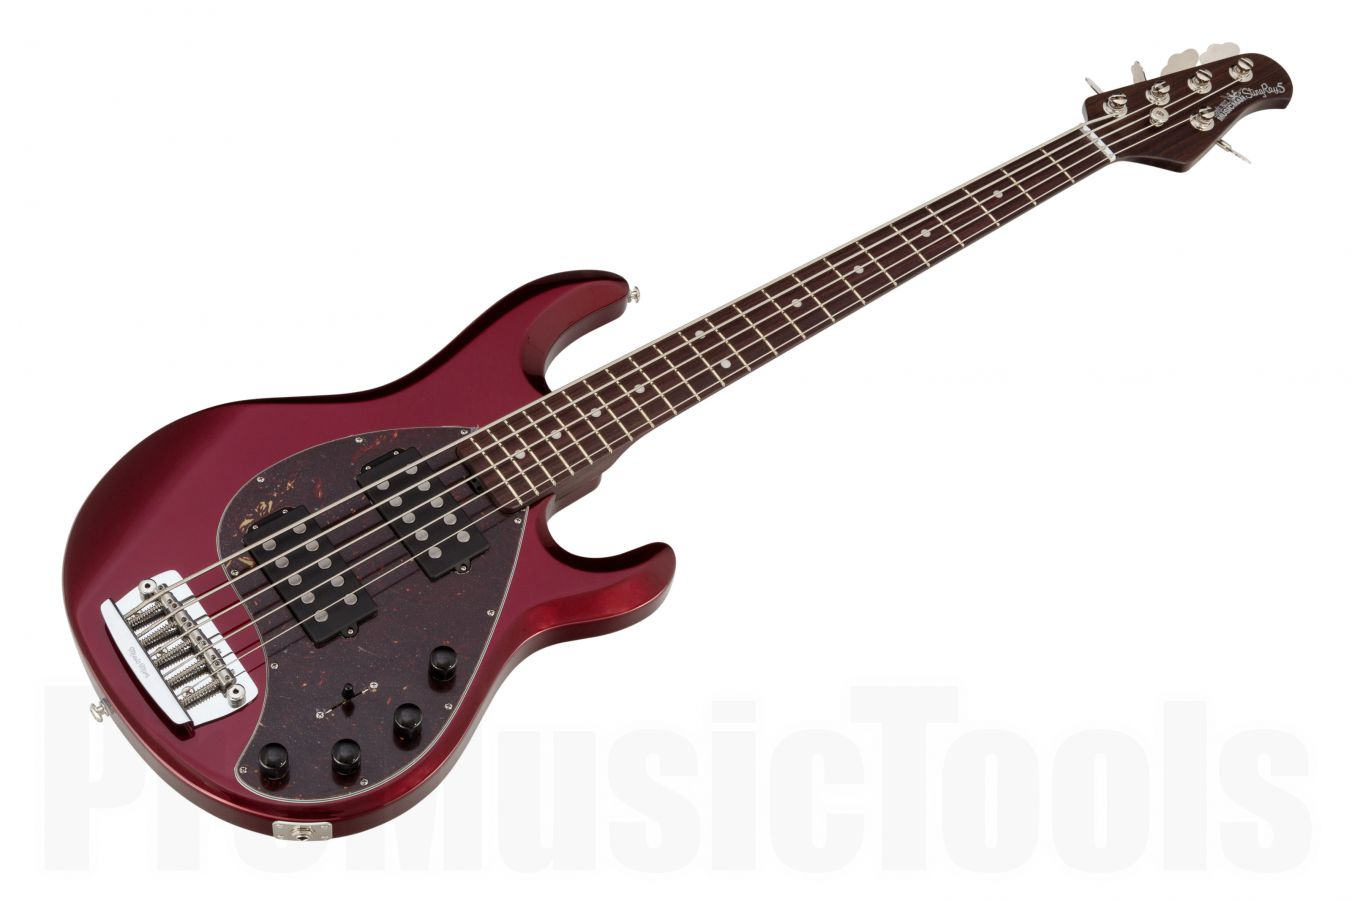 Music Man USA Stingray 5 HH CR - Candy Red - Rosewood Neck Limited Edition